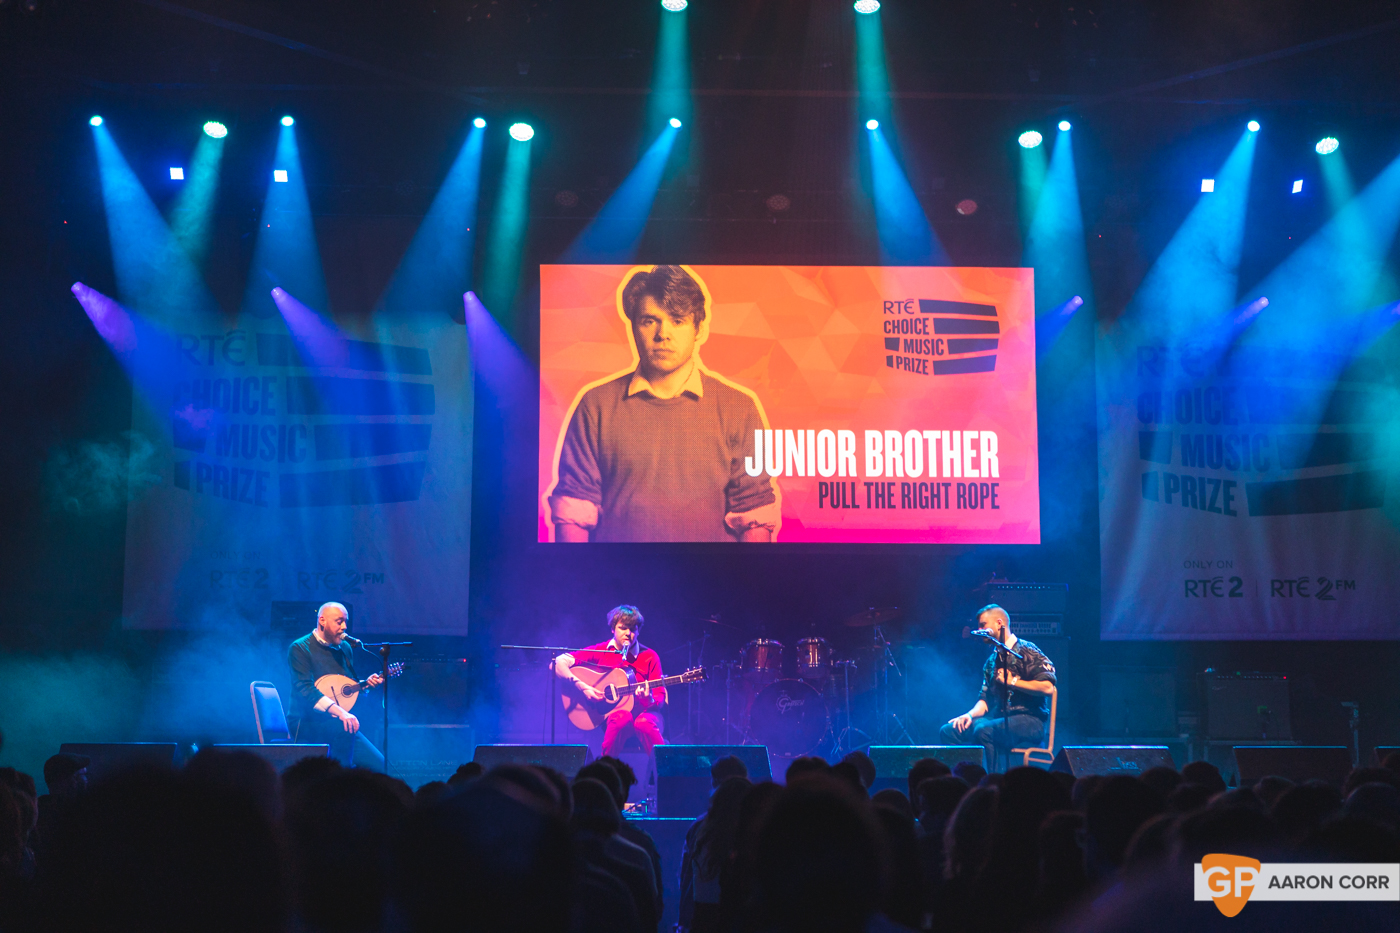 Junior Brother at Choice Music Prize 2020 in Vicar Street, Dublin on 05-Mar-20 by Aaron Corr-2525